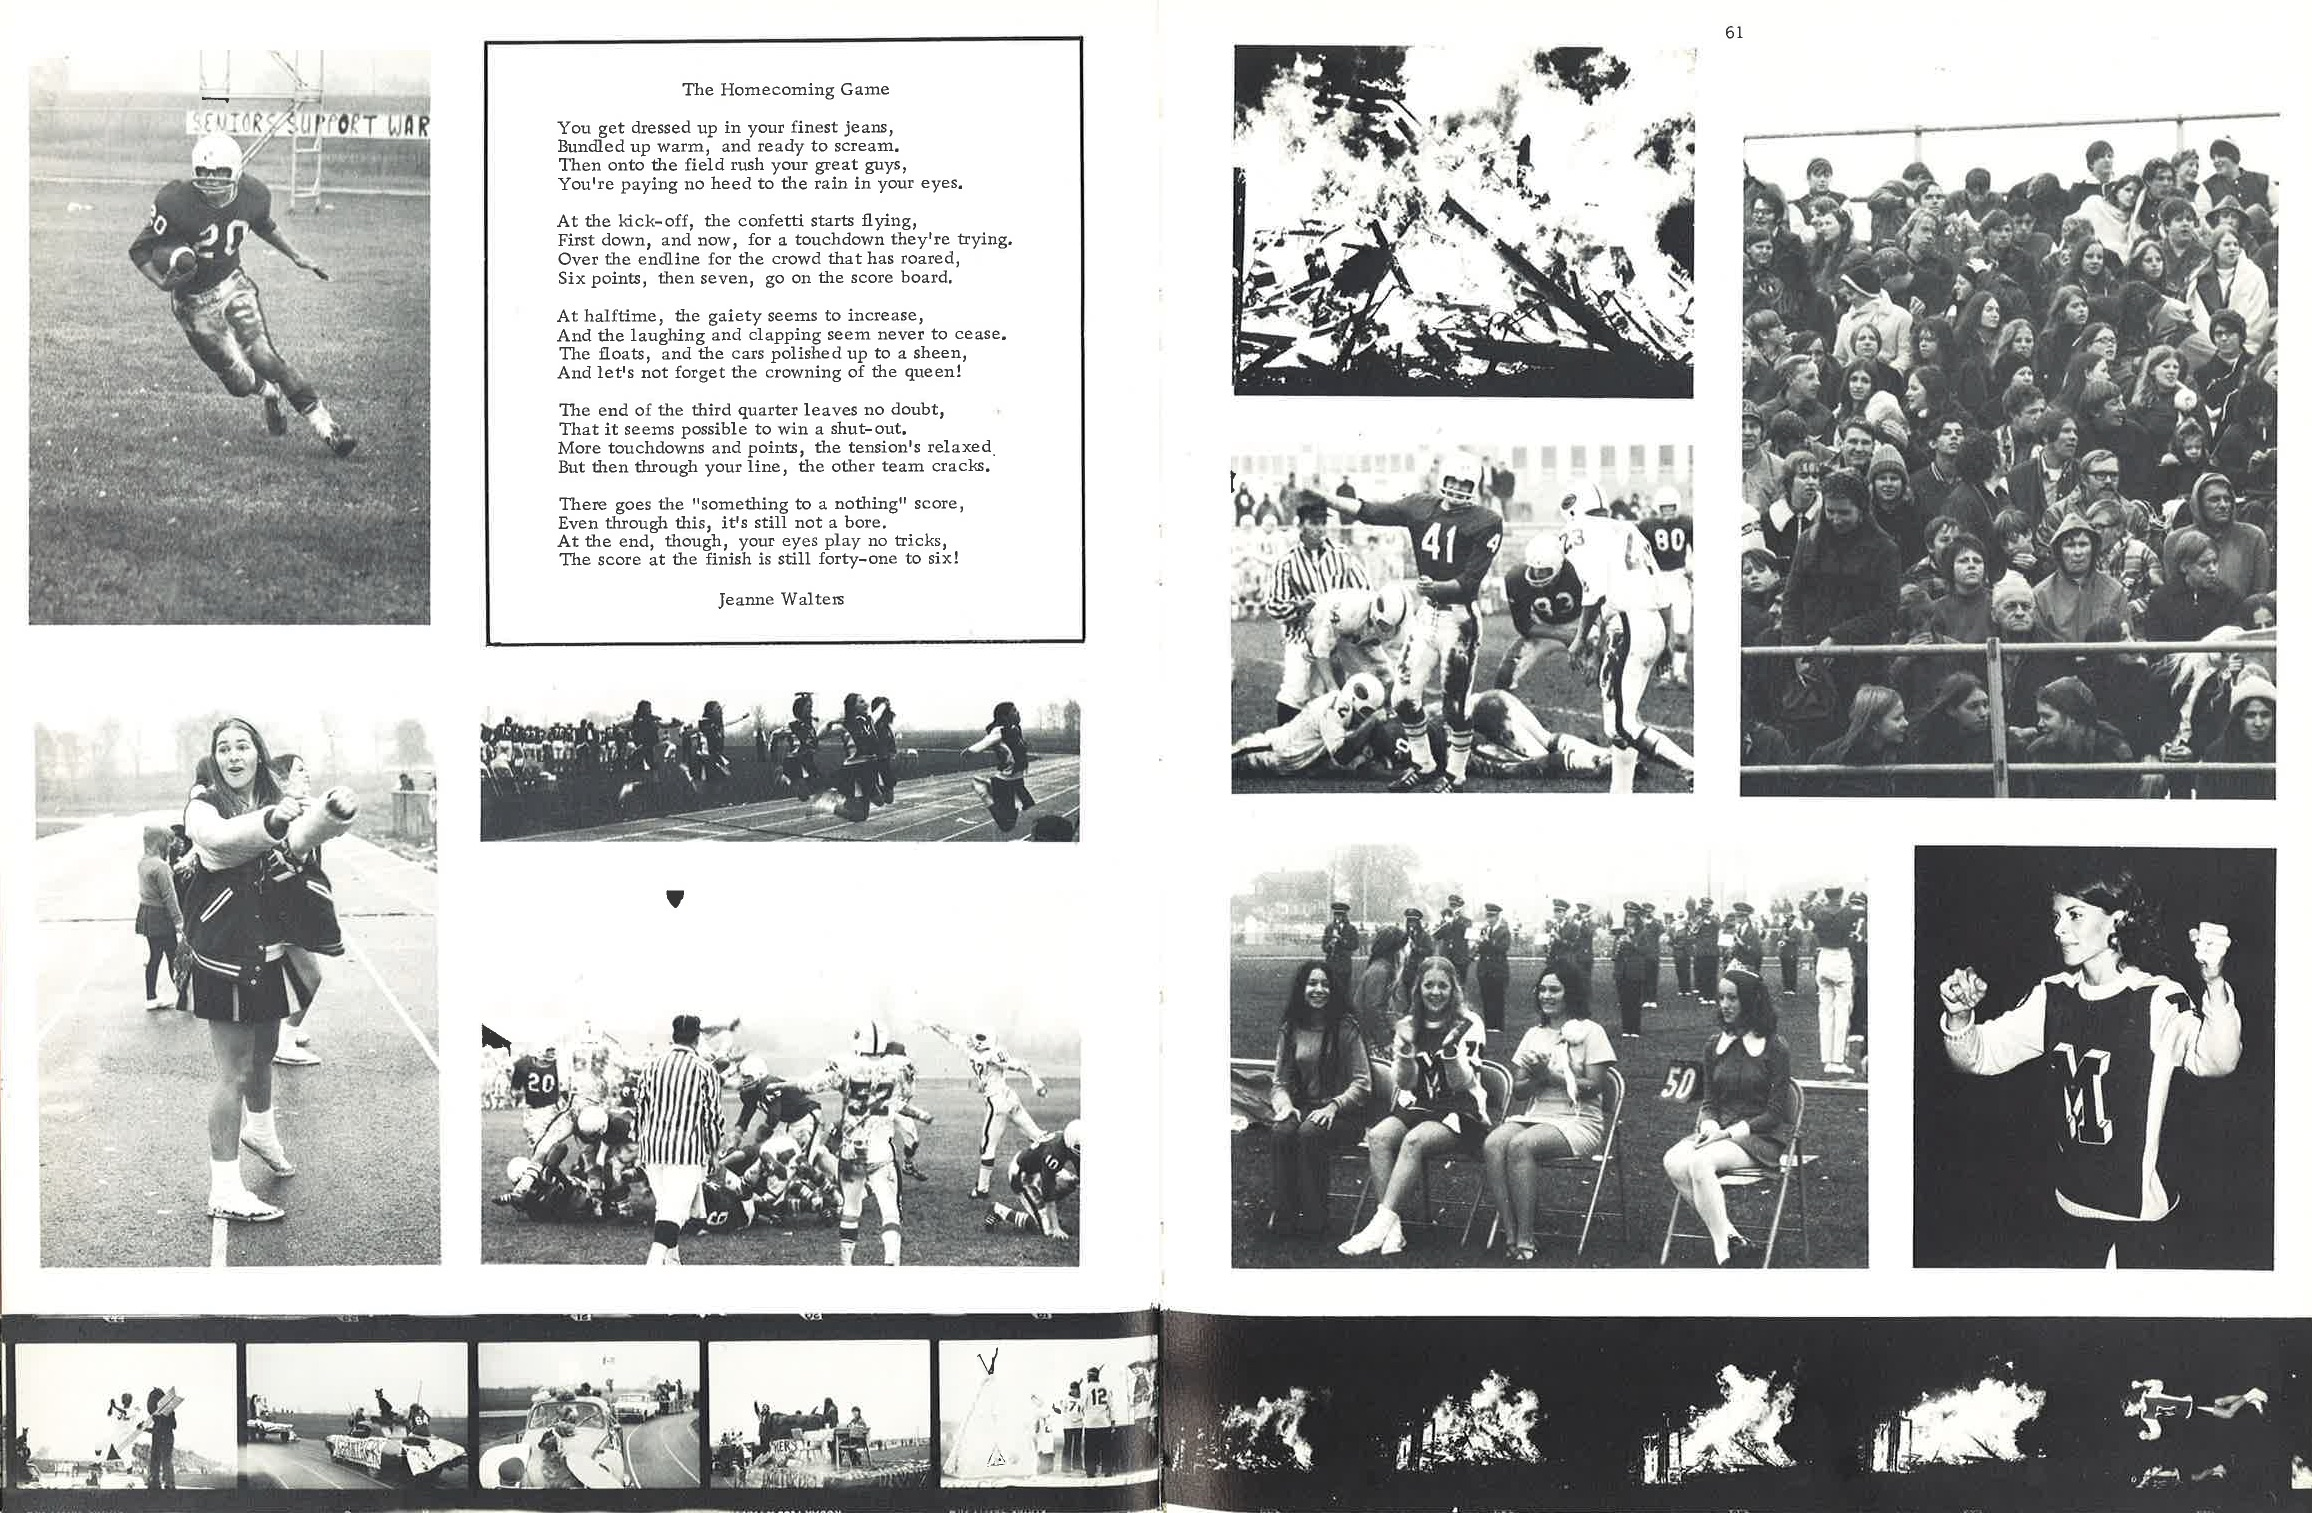 1972_Yearbook_60-61.jpg